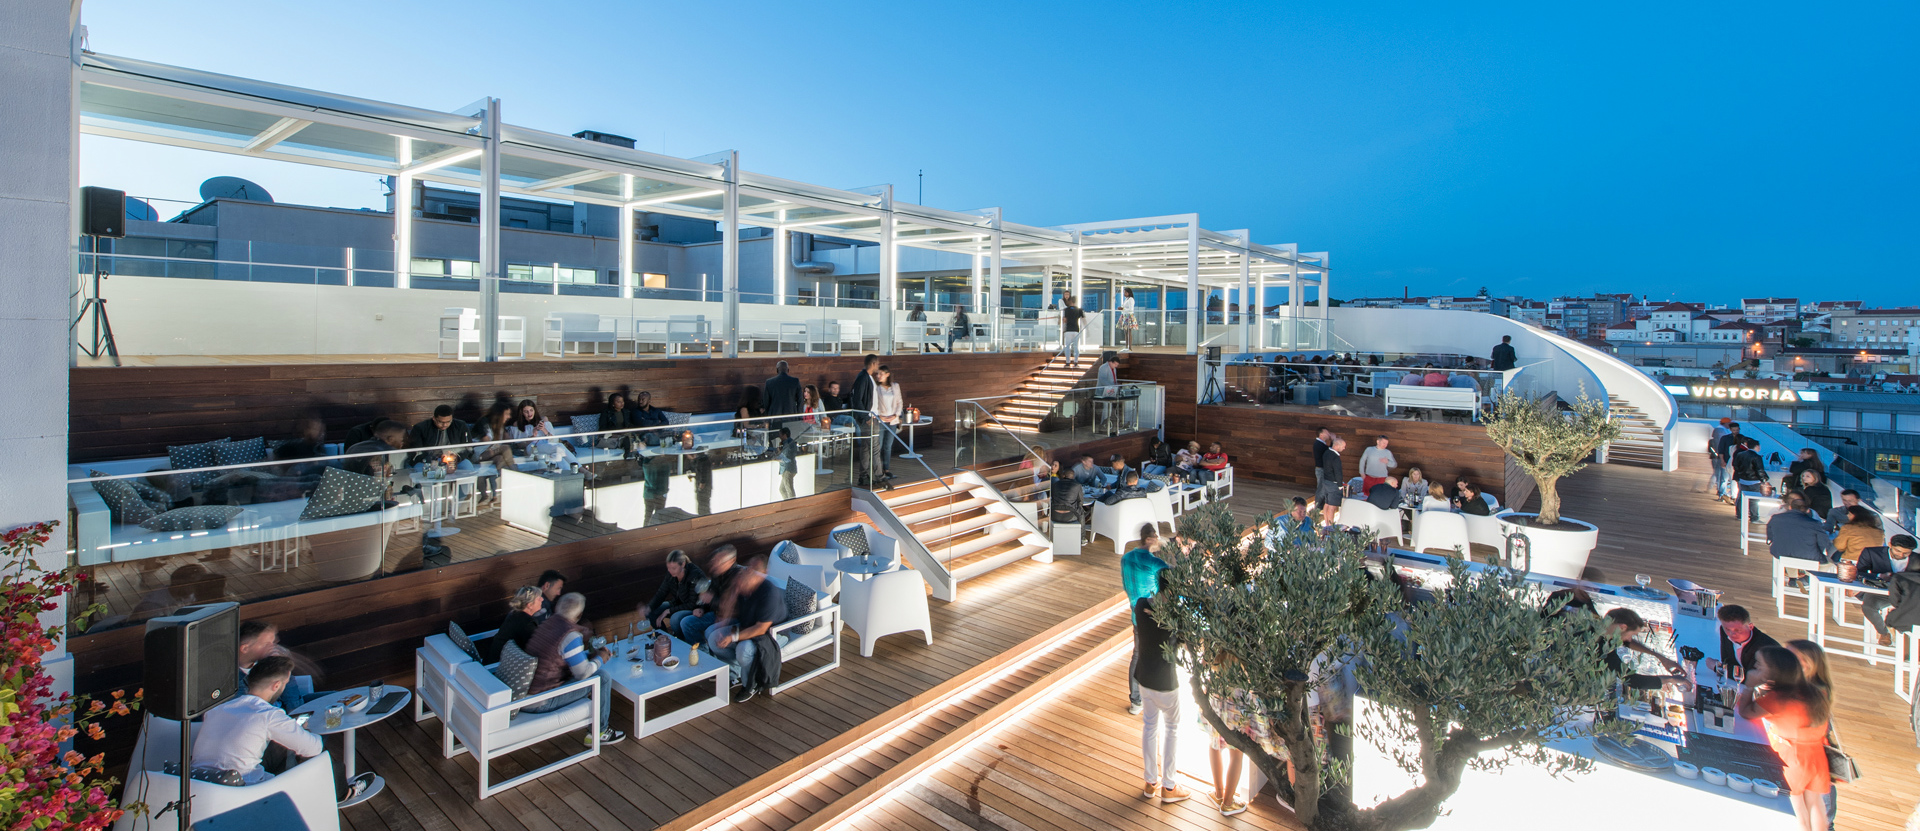 Best rooftops in Portugal: sky bar hotel tivoli what to do in lisbon What To Do In Lisbon: 48 Hours In The Capital Carrocel 2 65